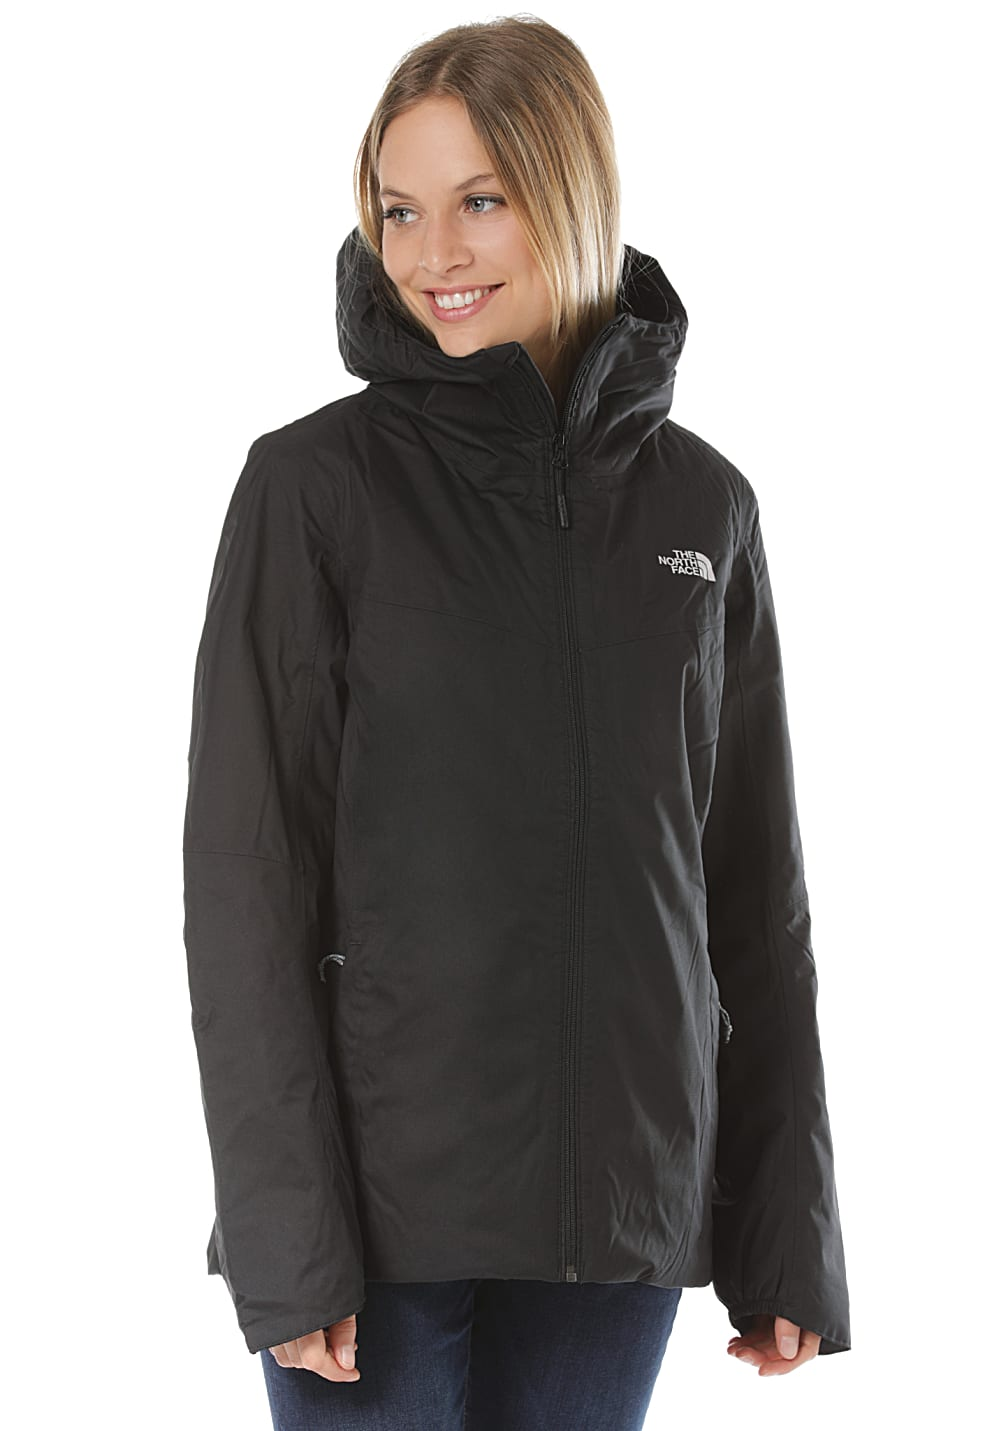 THE NORTH FACE Quest Insulated Outdoor Jacket for Women Black